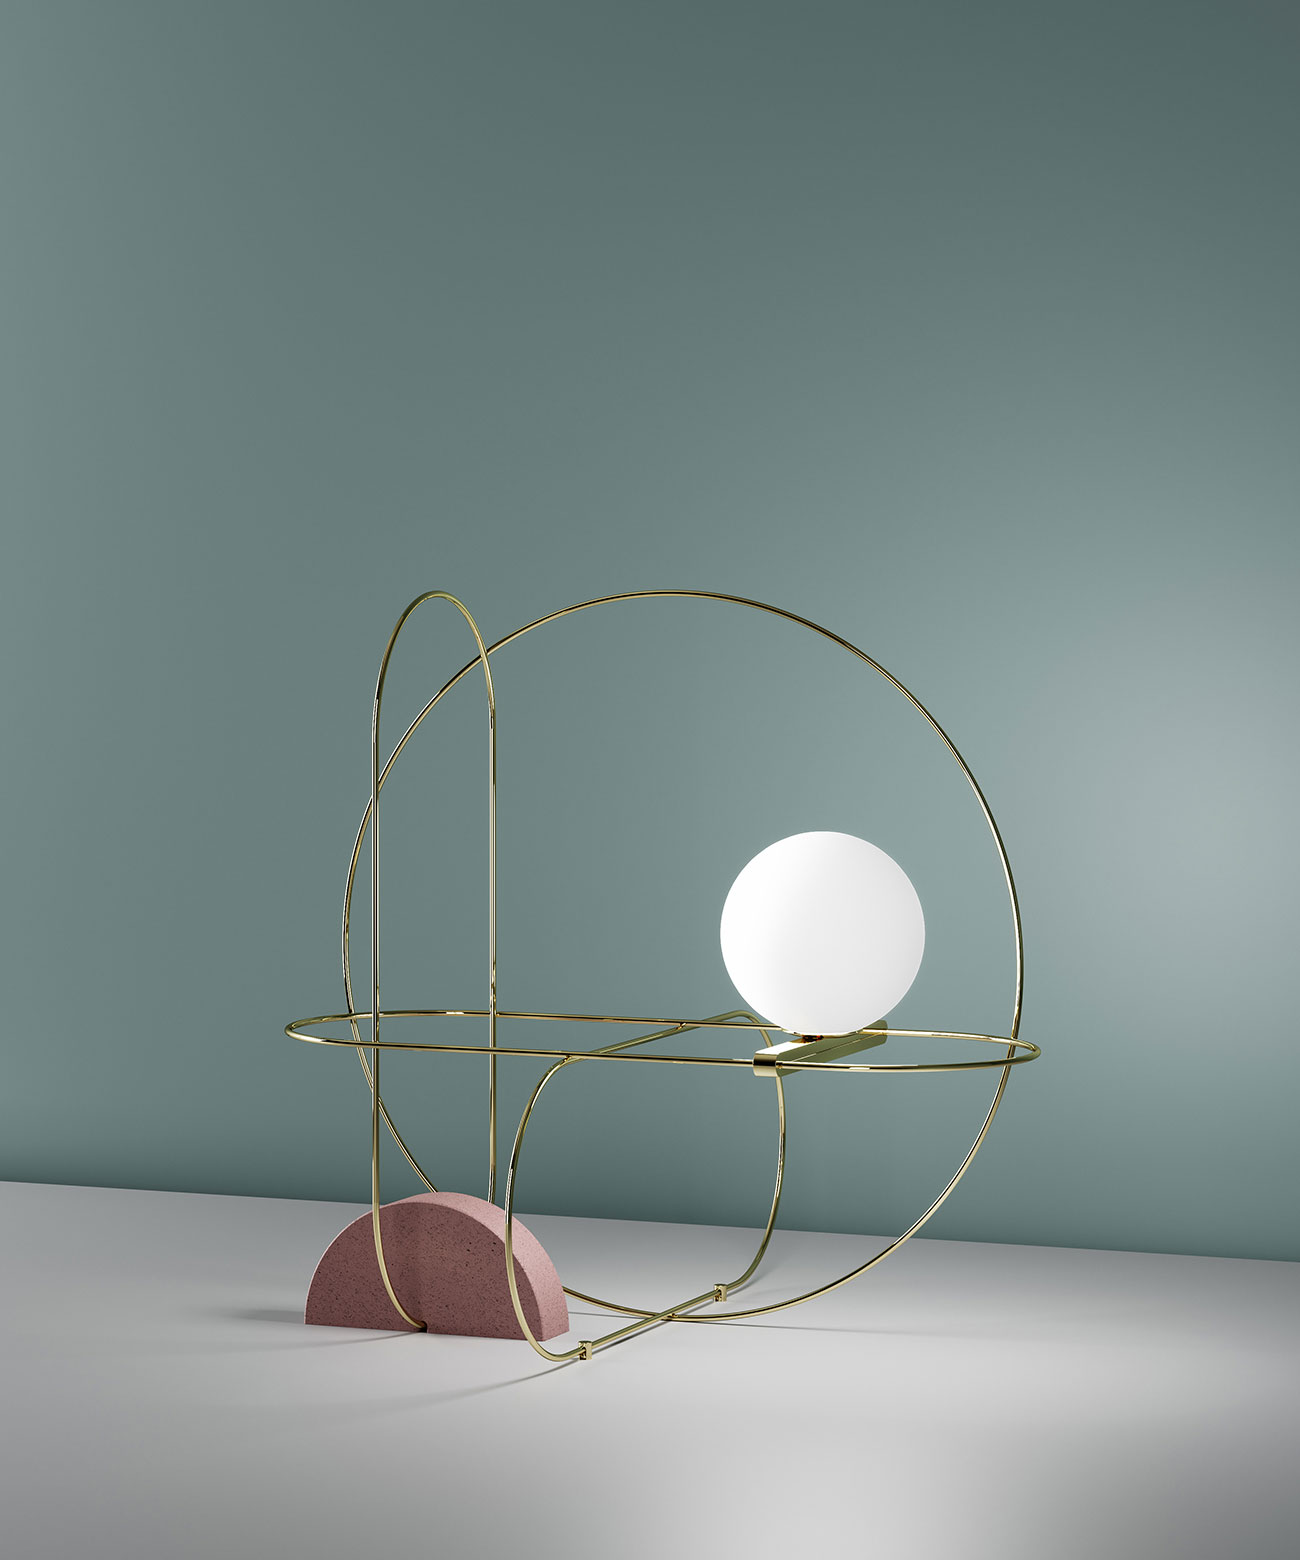 SETAREH table lamp by Francesco Librizzi for Fontana Arte.